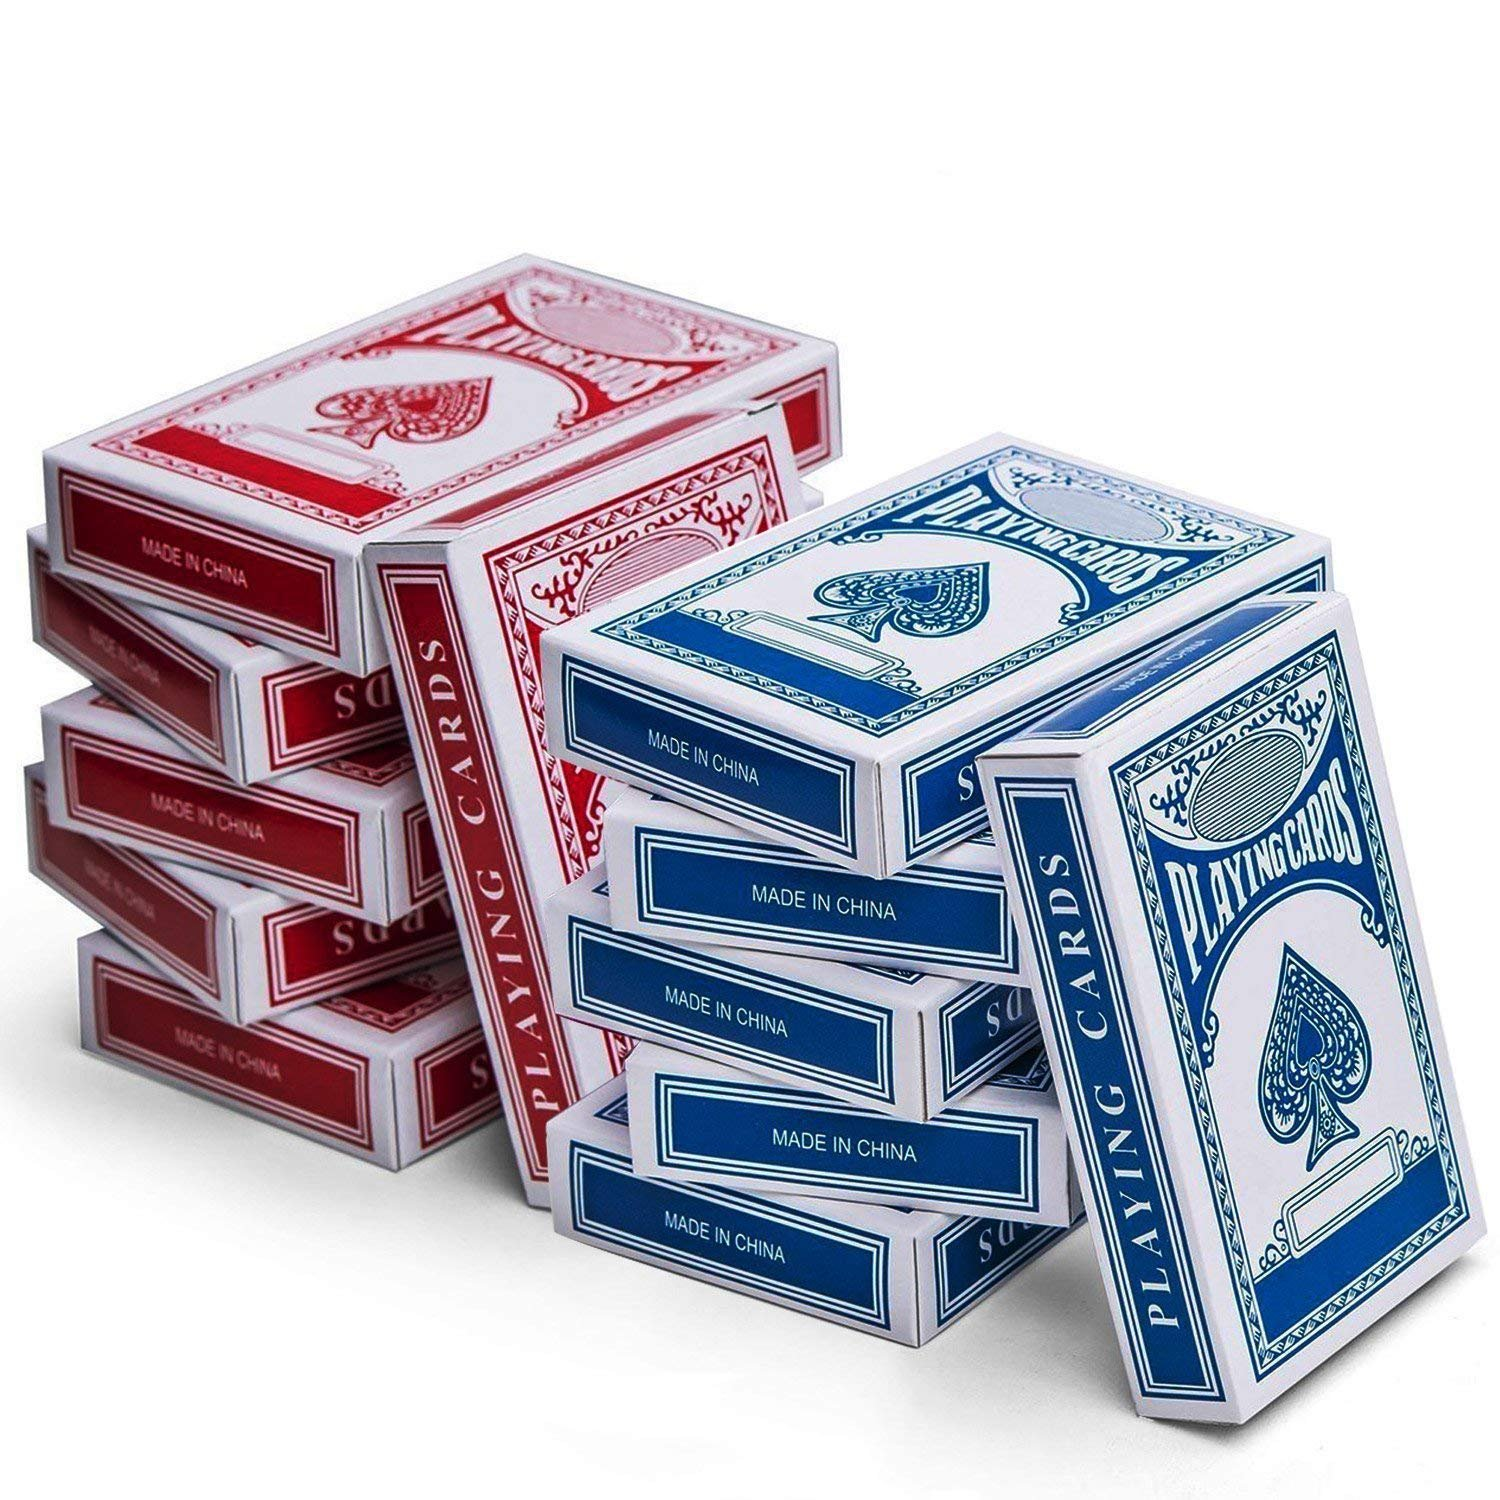 12-Decks Playing Cards - Blue And Red Printed Box Individual Packing For Party Favors, Christmas Gifts, Boys, Girls And Adults Texas, Blackjack And More - By Kidsco